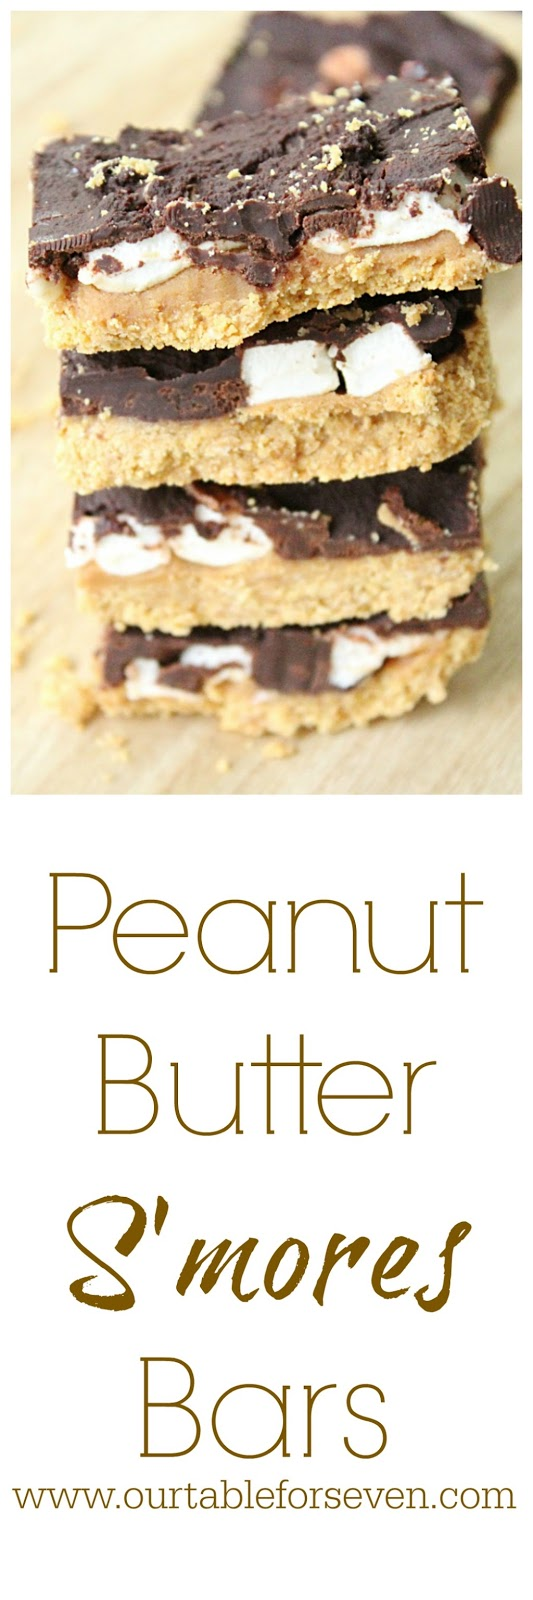 Peanut Butter S'mores Bars from Table for Seven